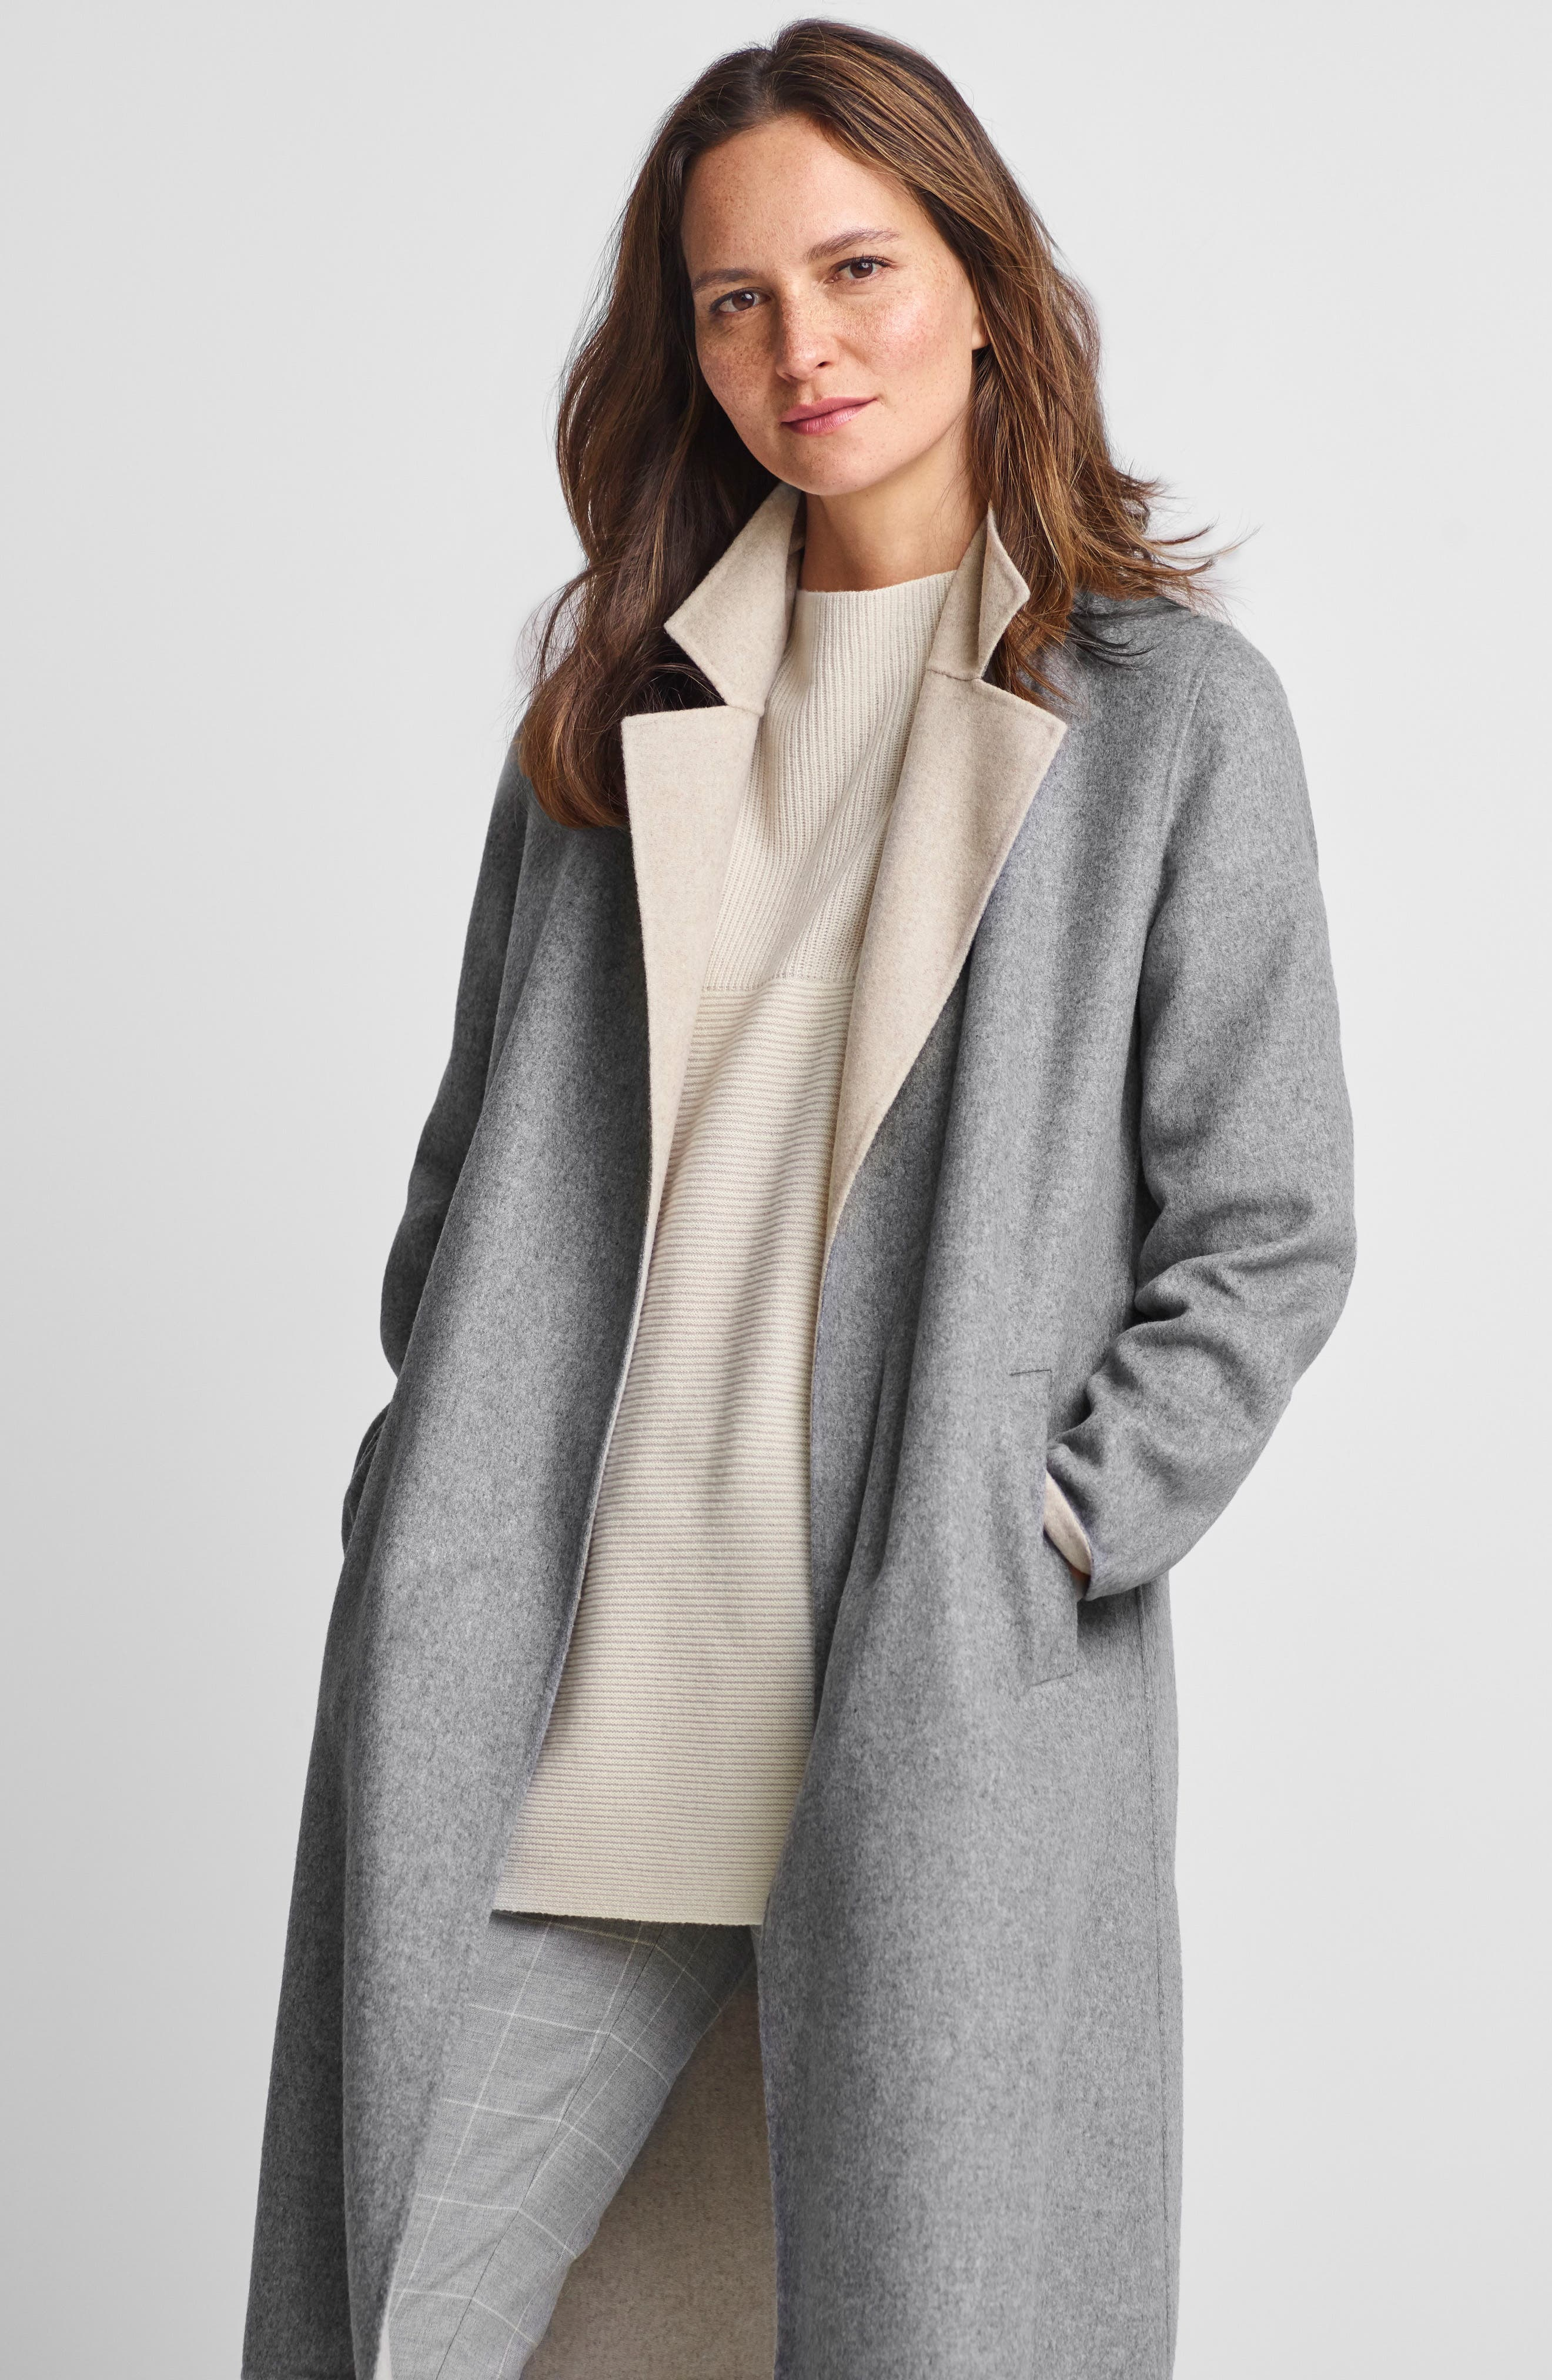 Notch Collar Long Wool Blend Jacket,                             Alternate thumbnail 7, color,                             252